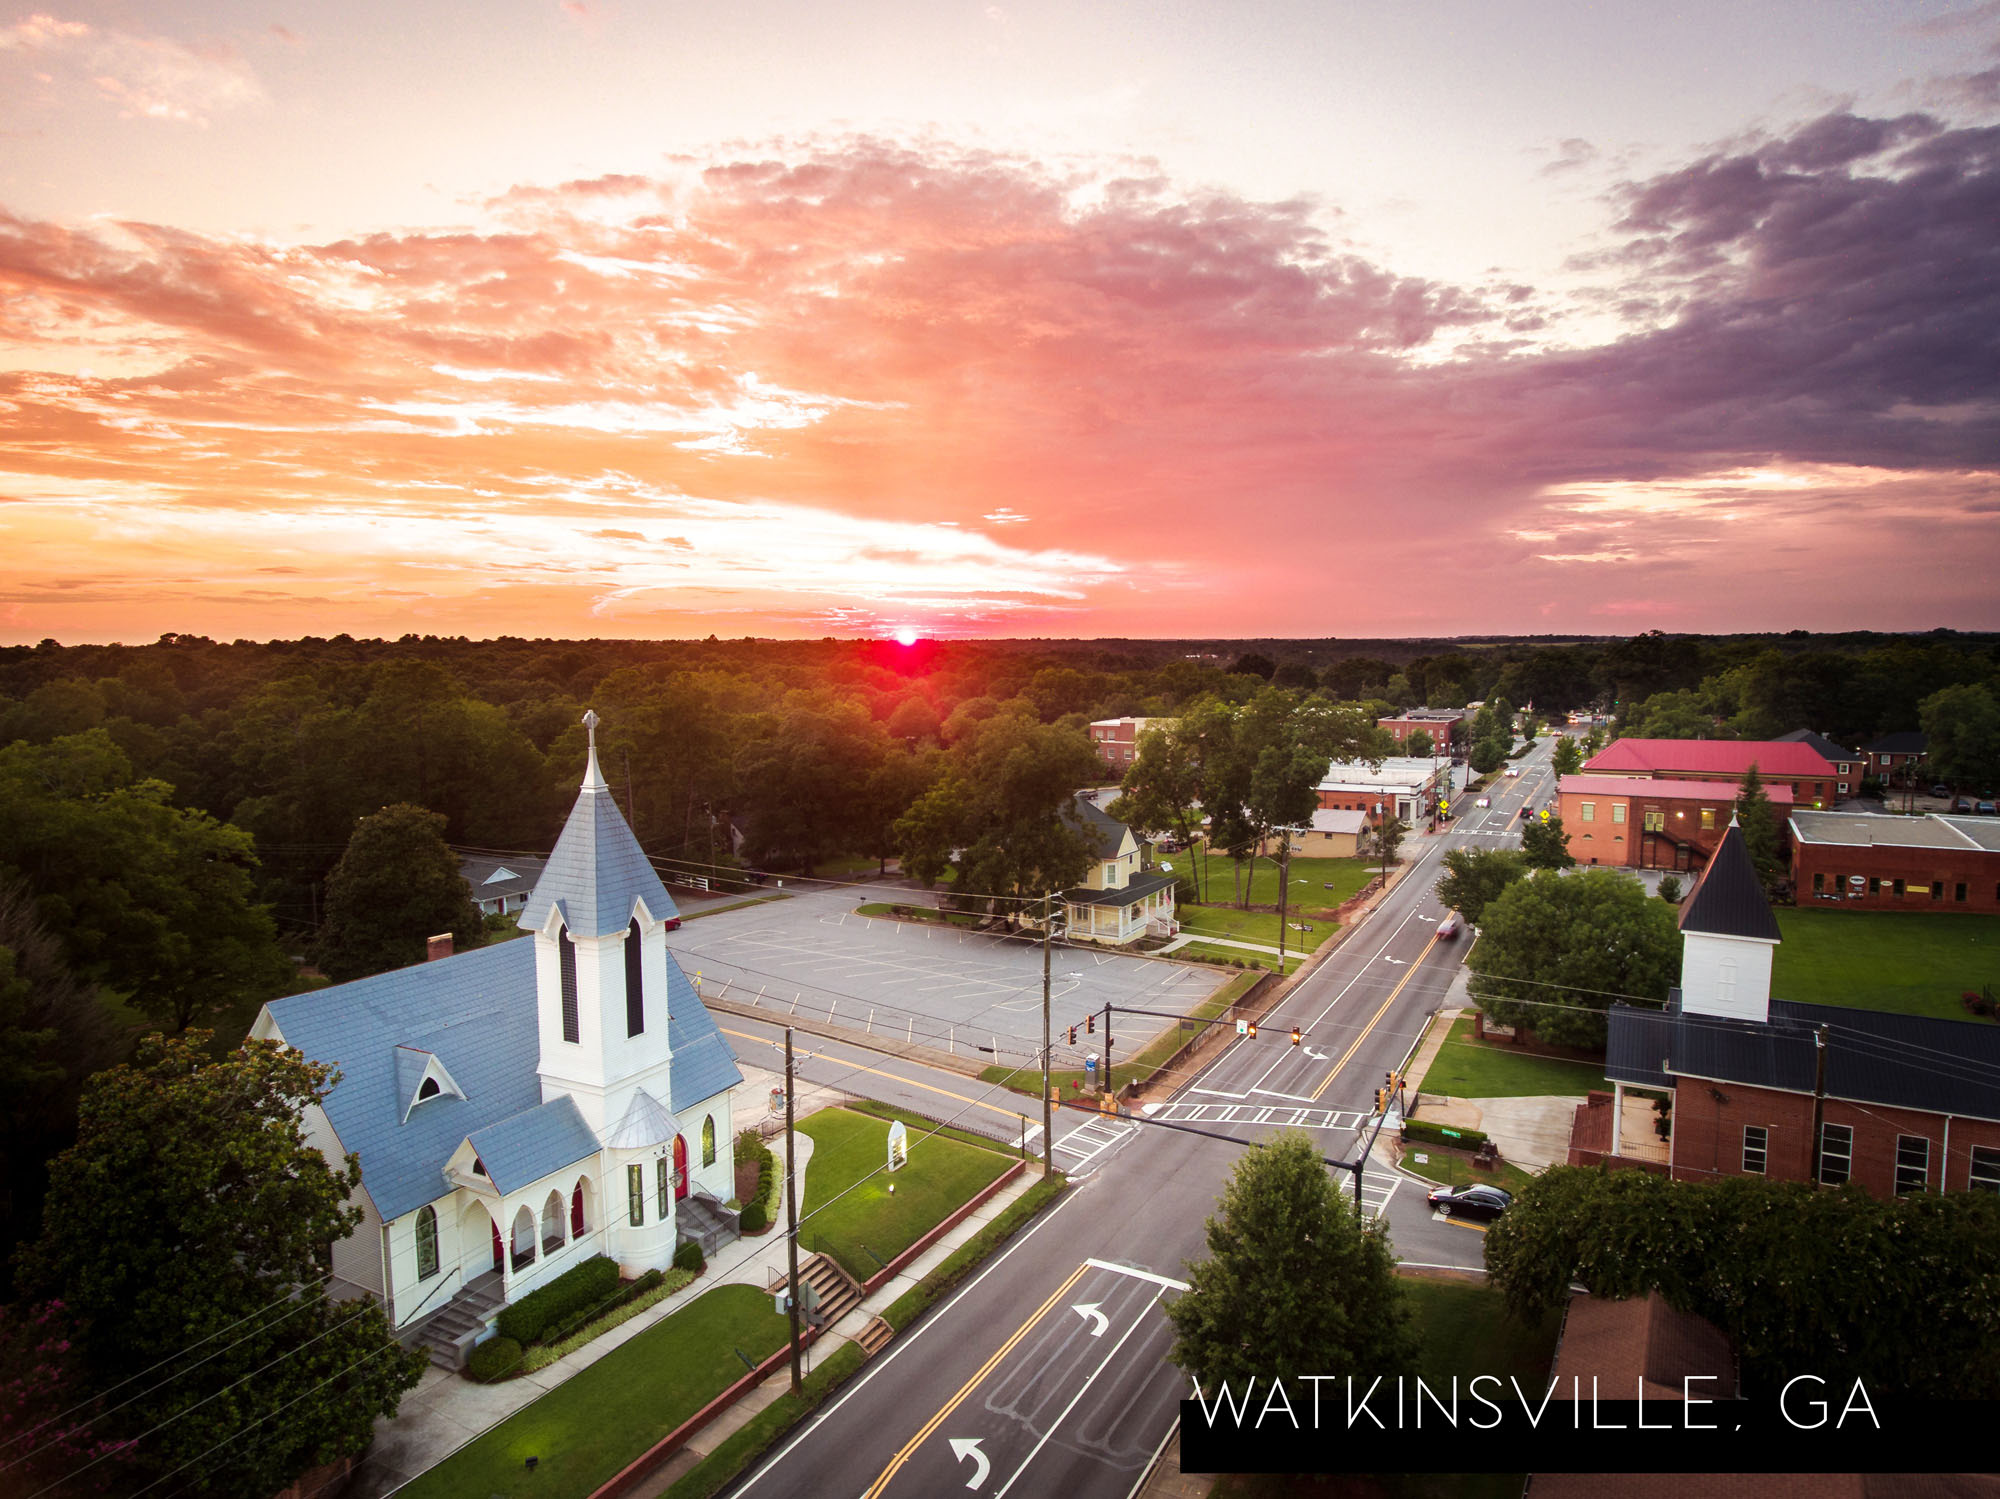 Sunset over Watkinsville-Oconee County. Photo by Chris Greer, @upabovegeorgia